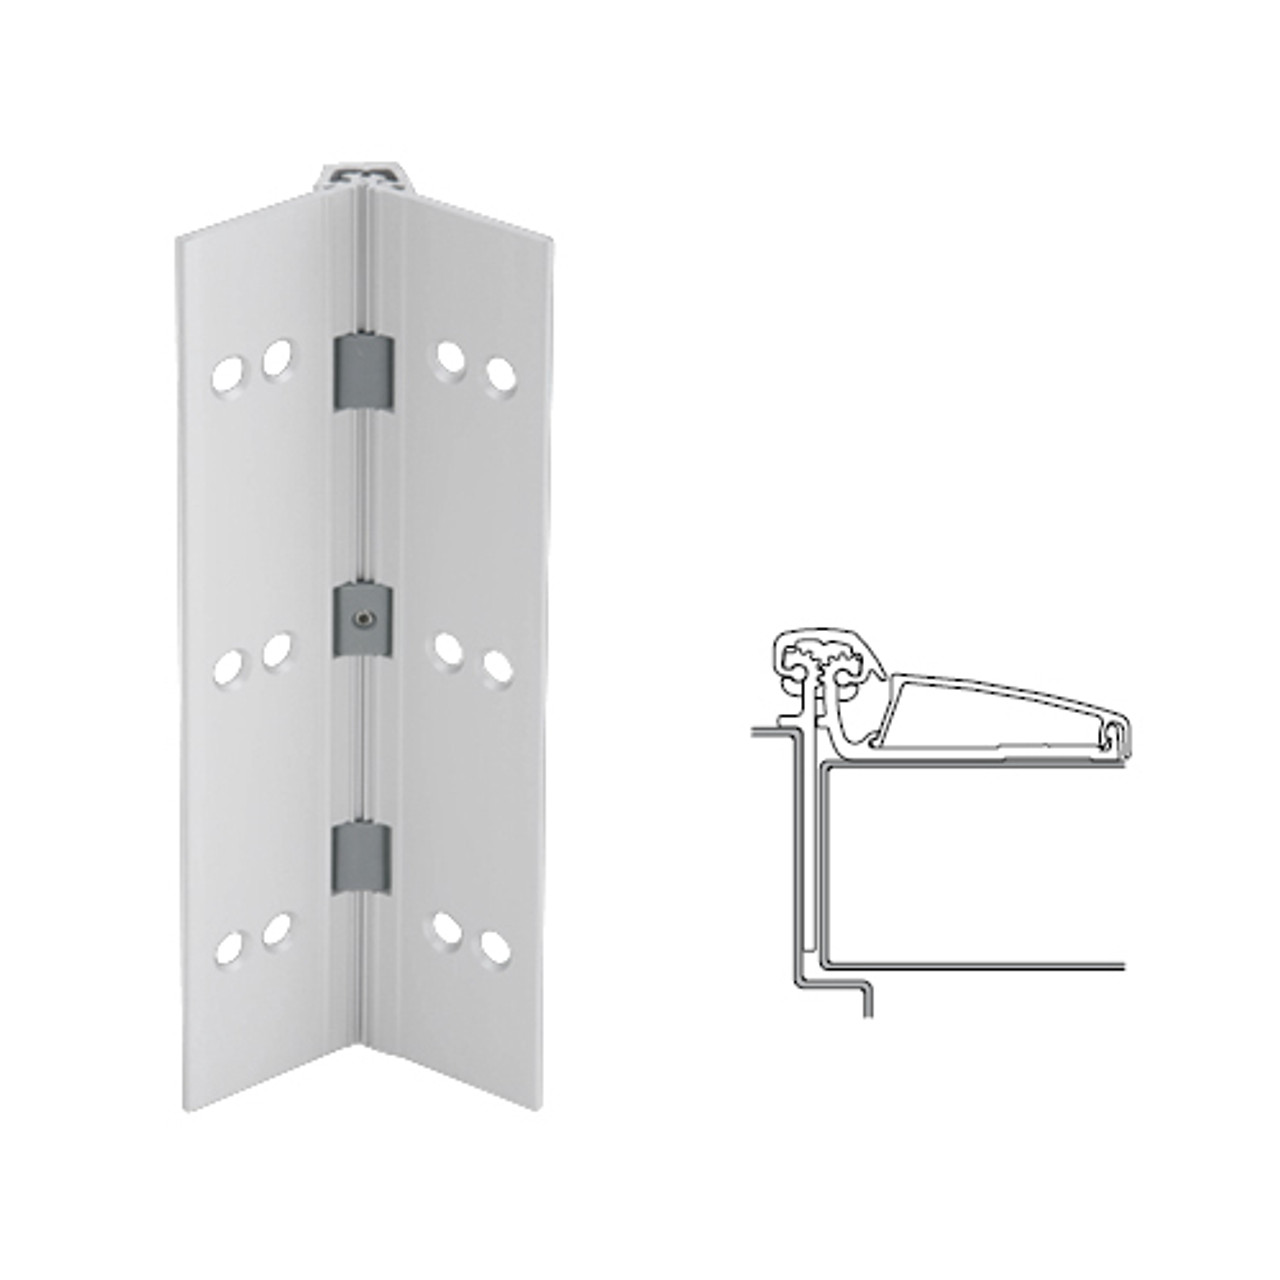 046XY-US28-83-TF IVES Adjustable Half Surface Continuous Geared Hinges with Thread Forming Screws in Satin Aluminum